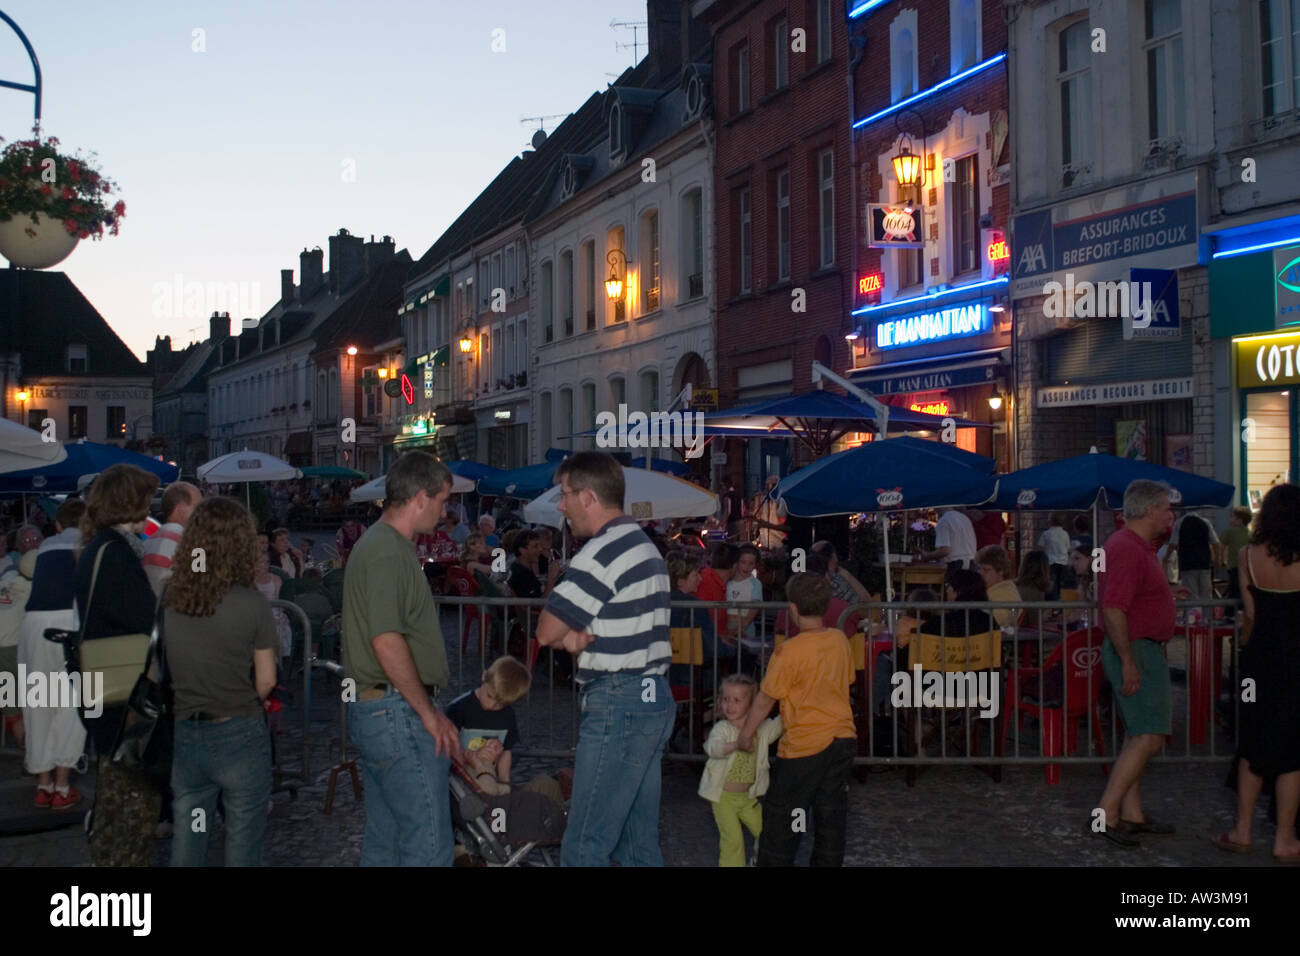 General view along town square during the Fete de la Musique event Hesdin early evening - Stock Image